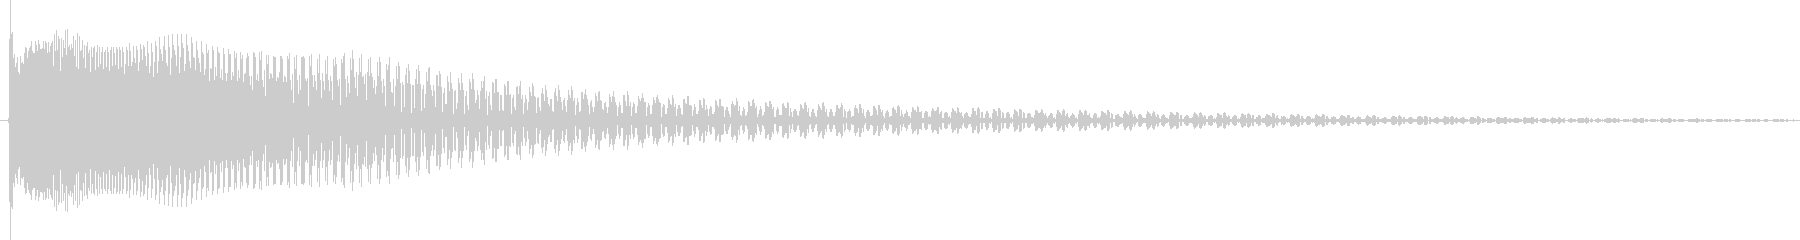 Tune (sound that runs from the spot)'s unreproduced waveform